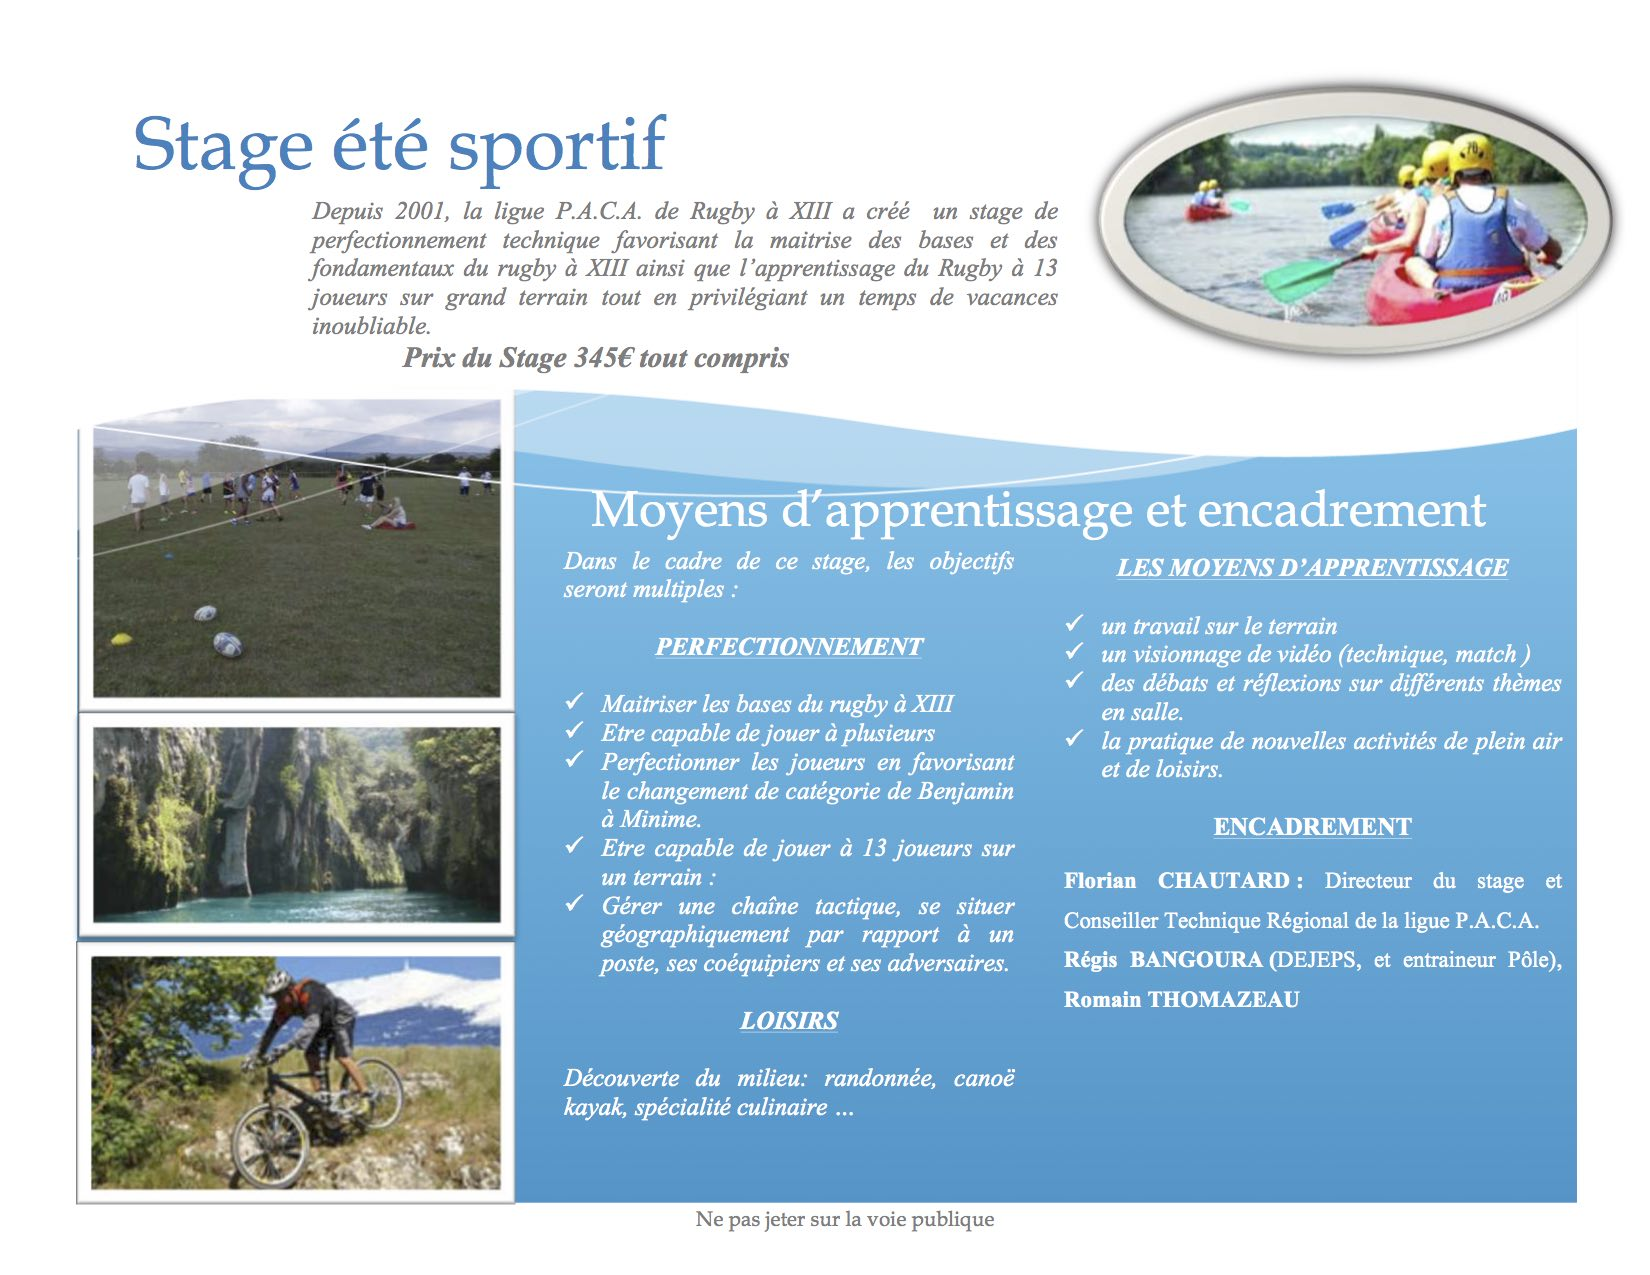 Stage Ete Sportif 2018 Federation Francaise De Rugby A Xiii